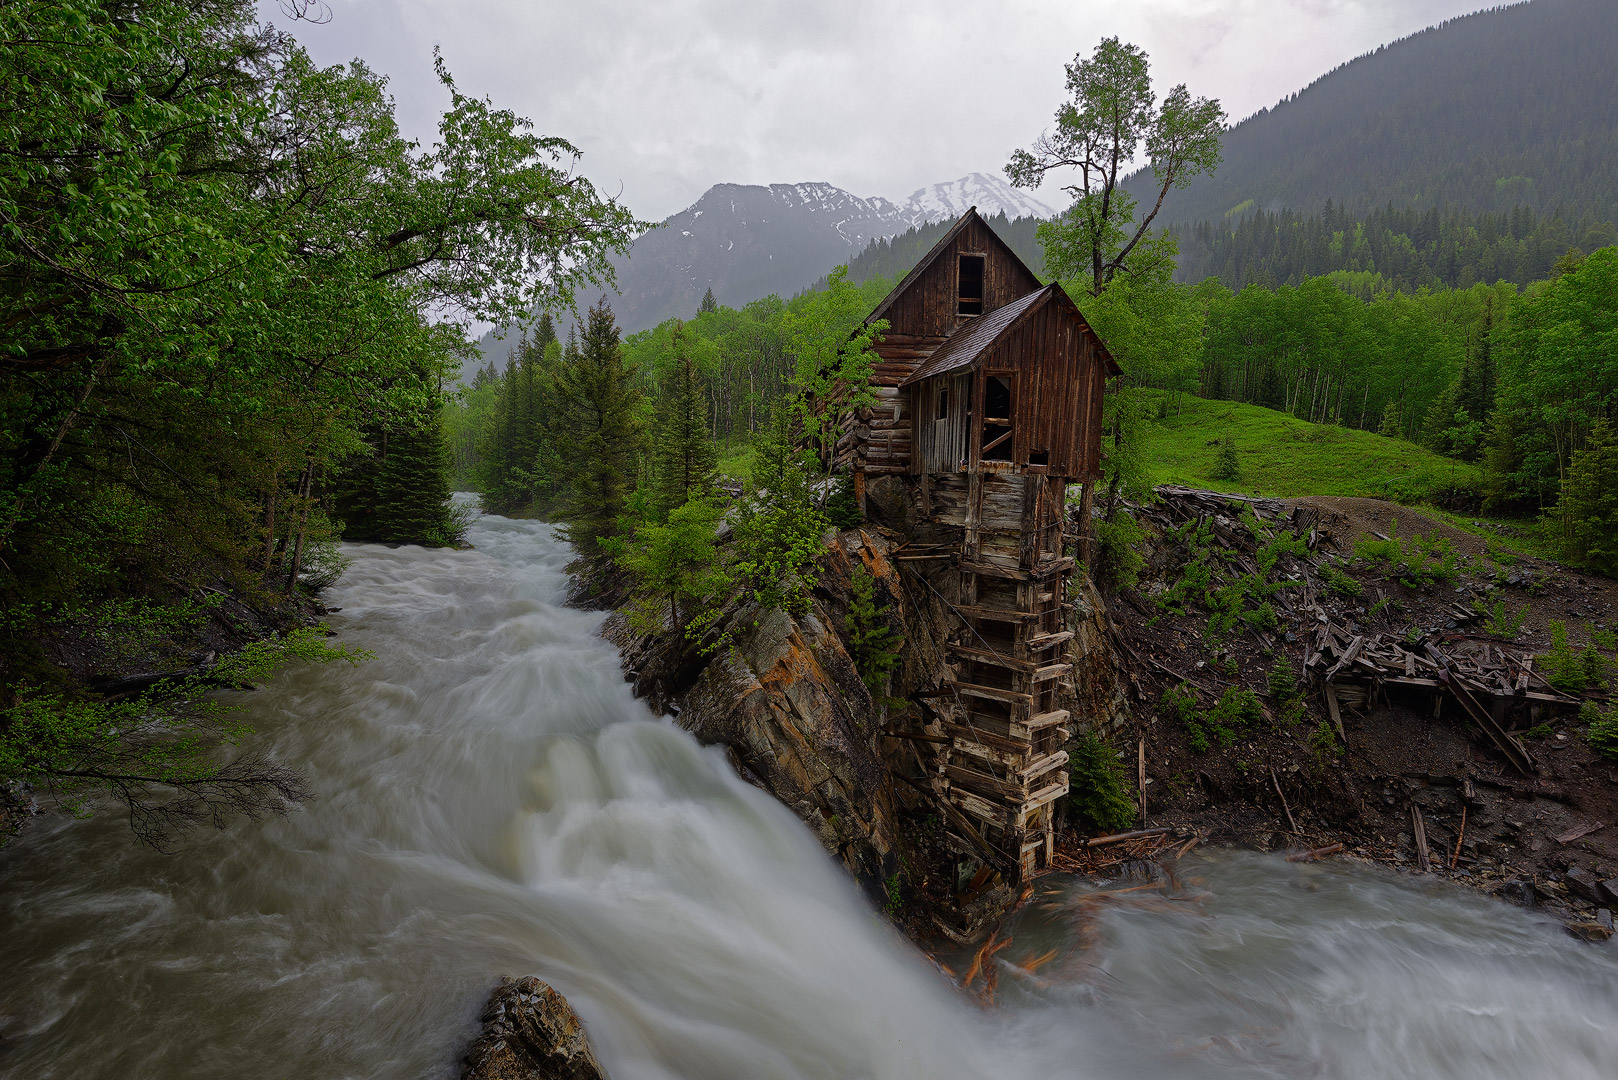 Crystal Mill, Colorado, Spring, waterfall, flooded, old structure, marble, mountains, snow, aspen, green, famous, photos, location, bernard chen, timescapes, photo